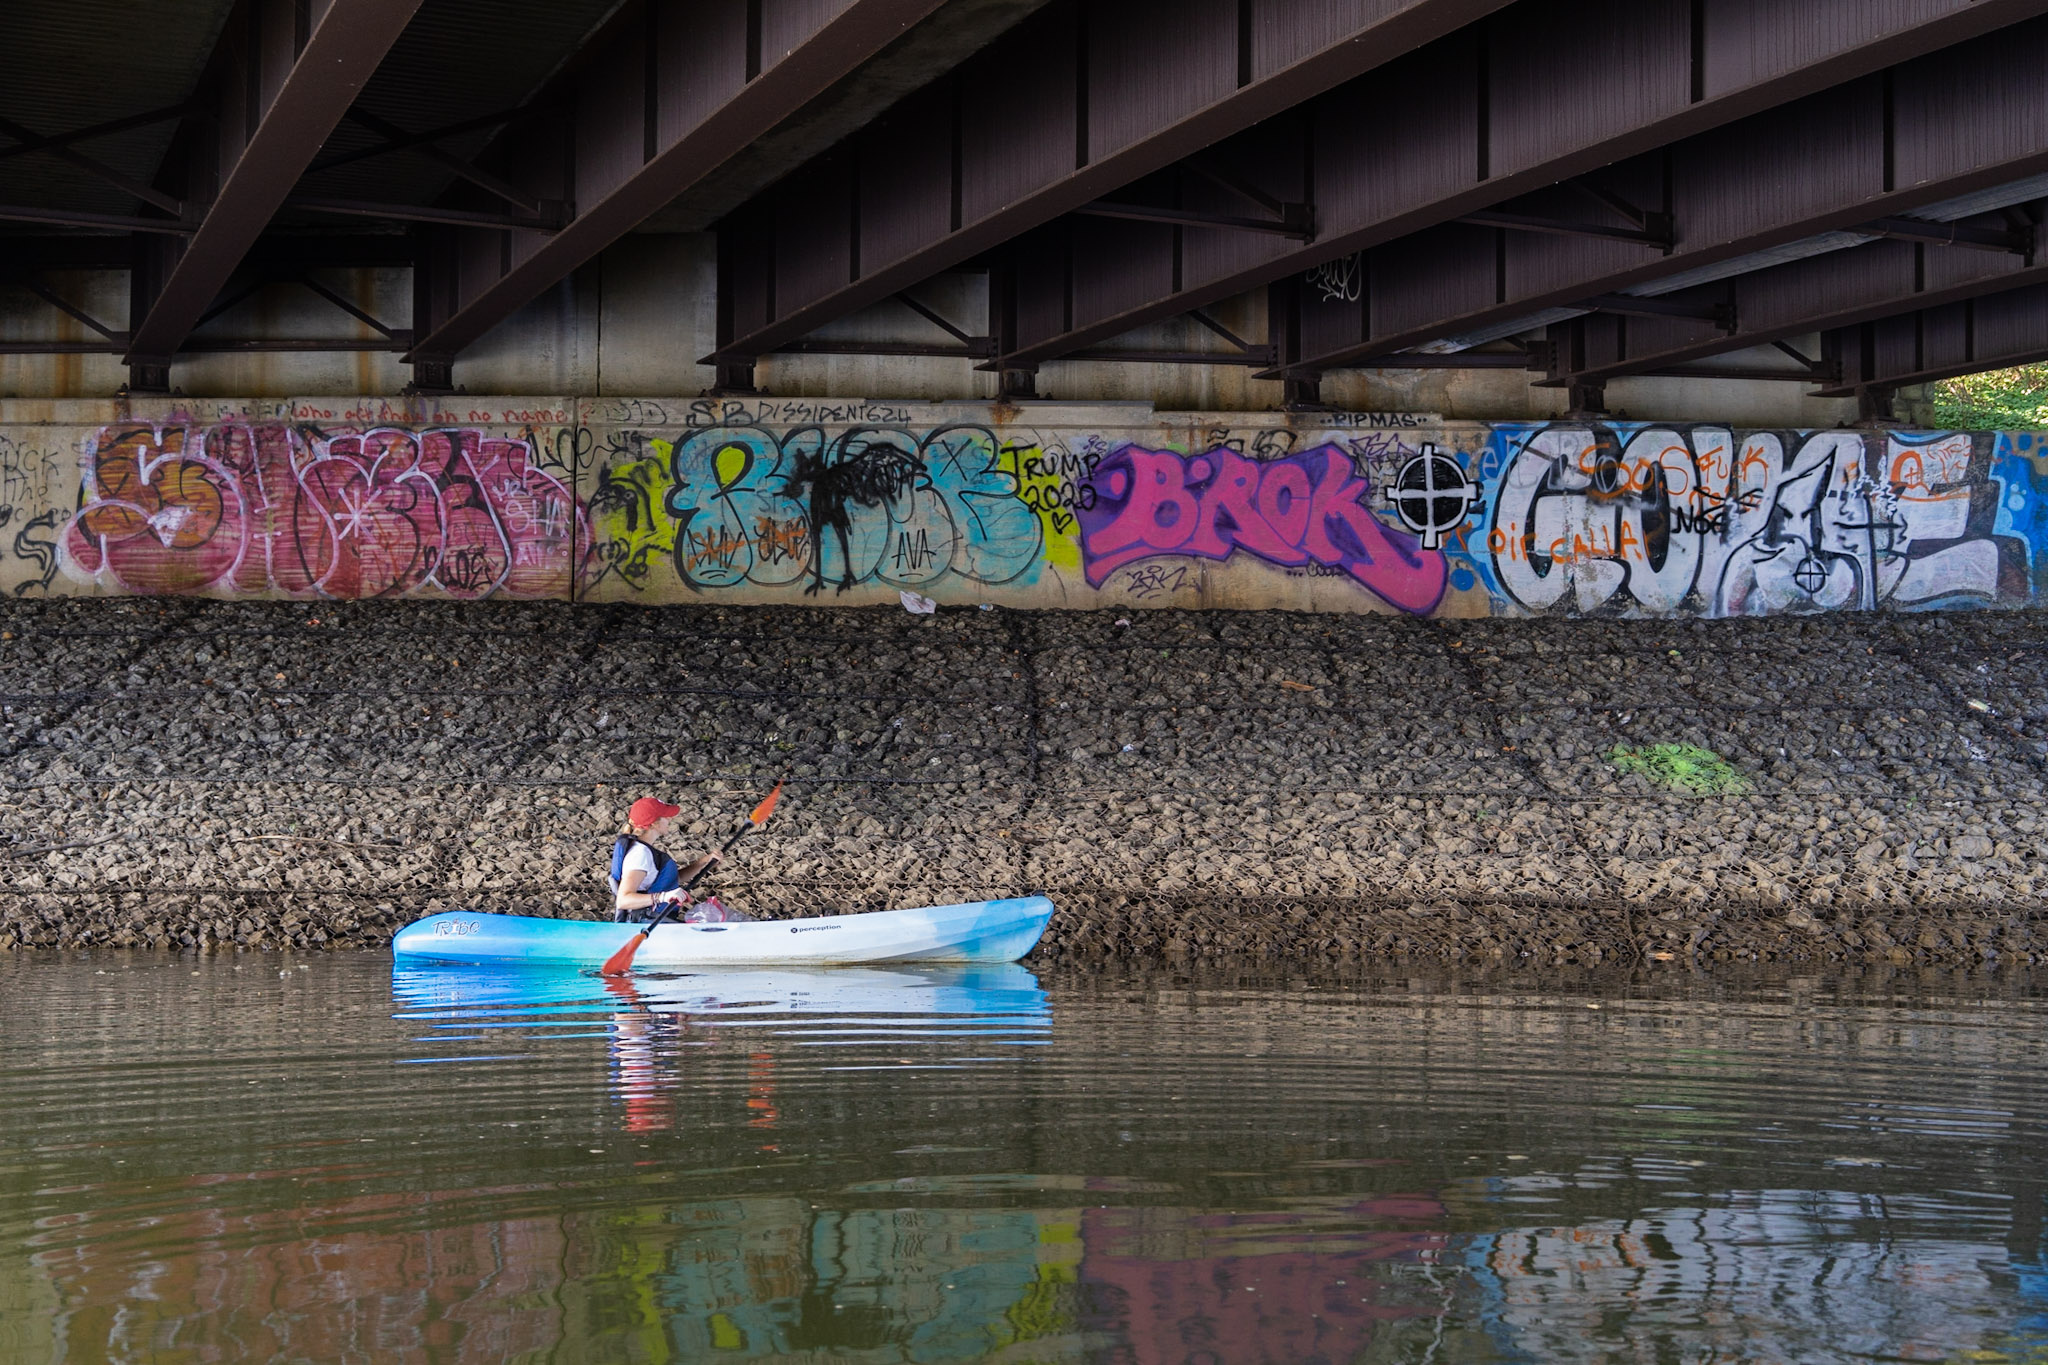 A kayaker paddles beneath a bridge covered in graffiti